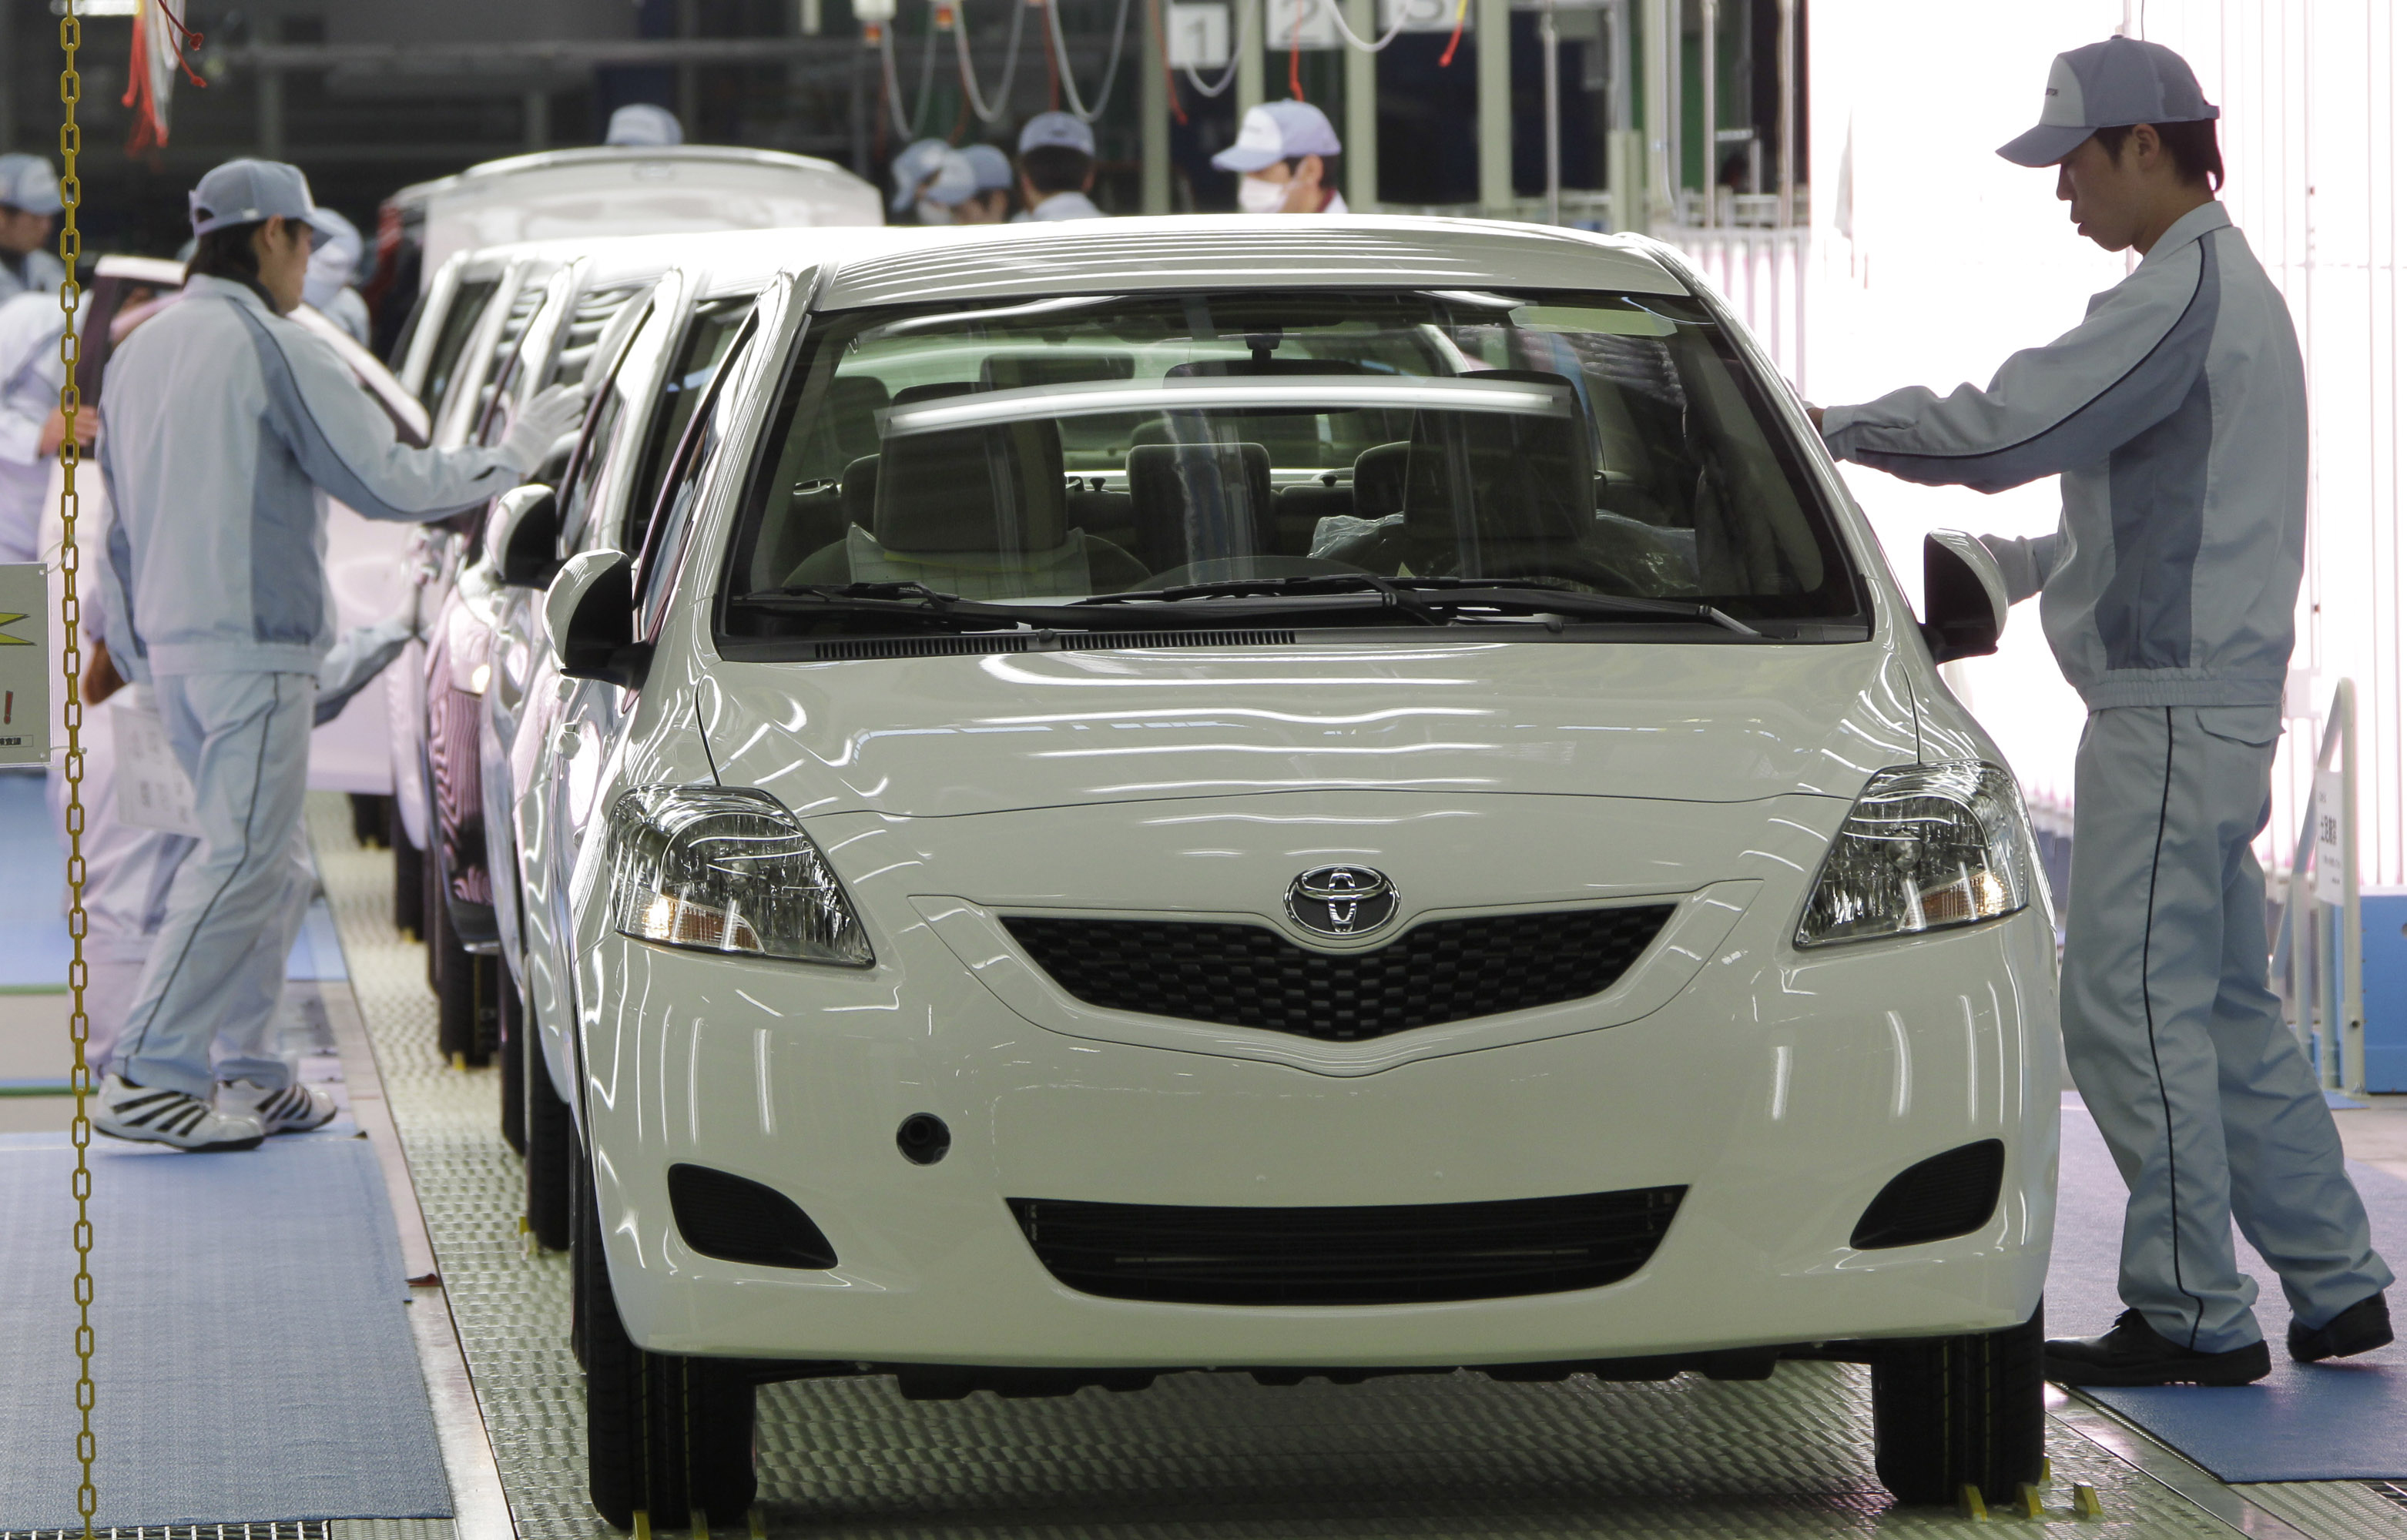 Toyota will resume production at all Japan plants from April 18 to 27 at half normal levels